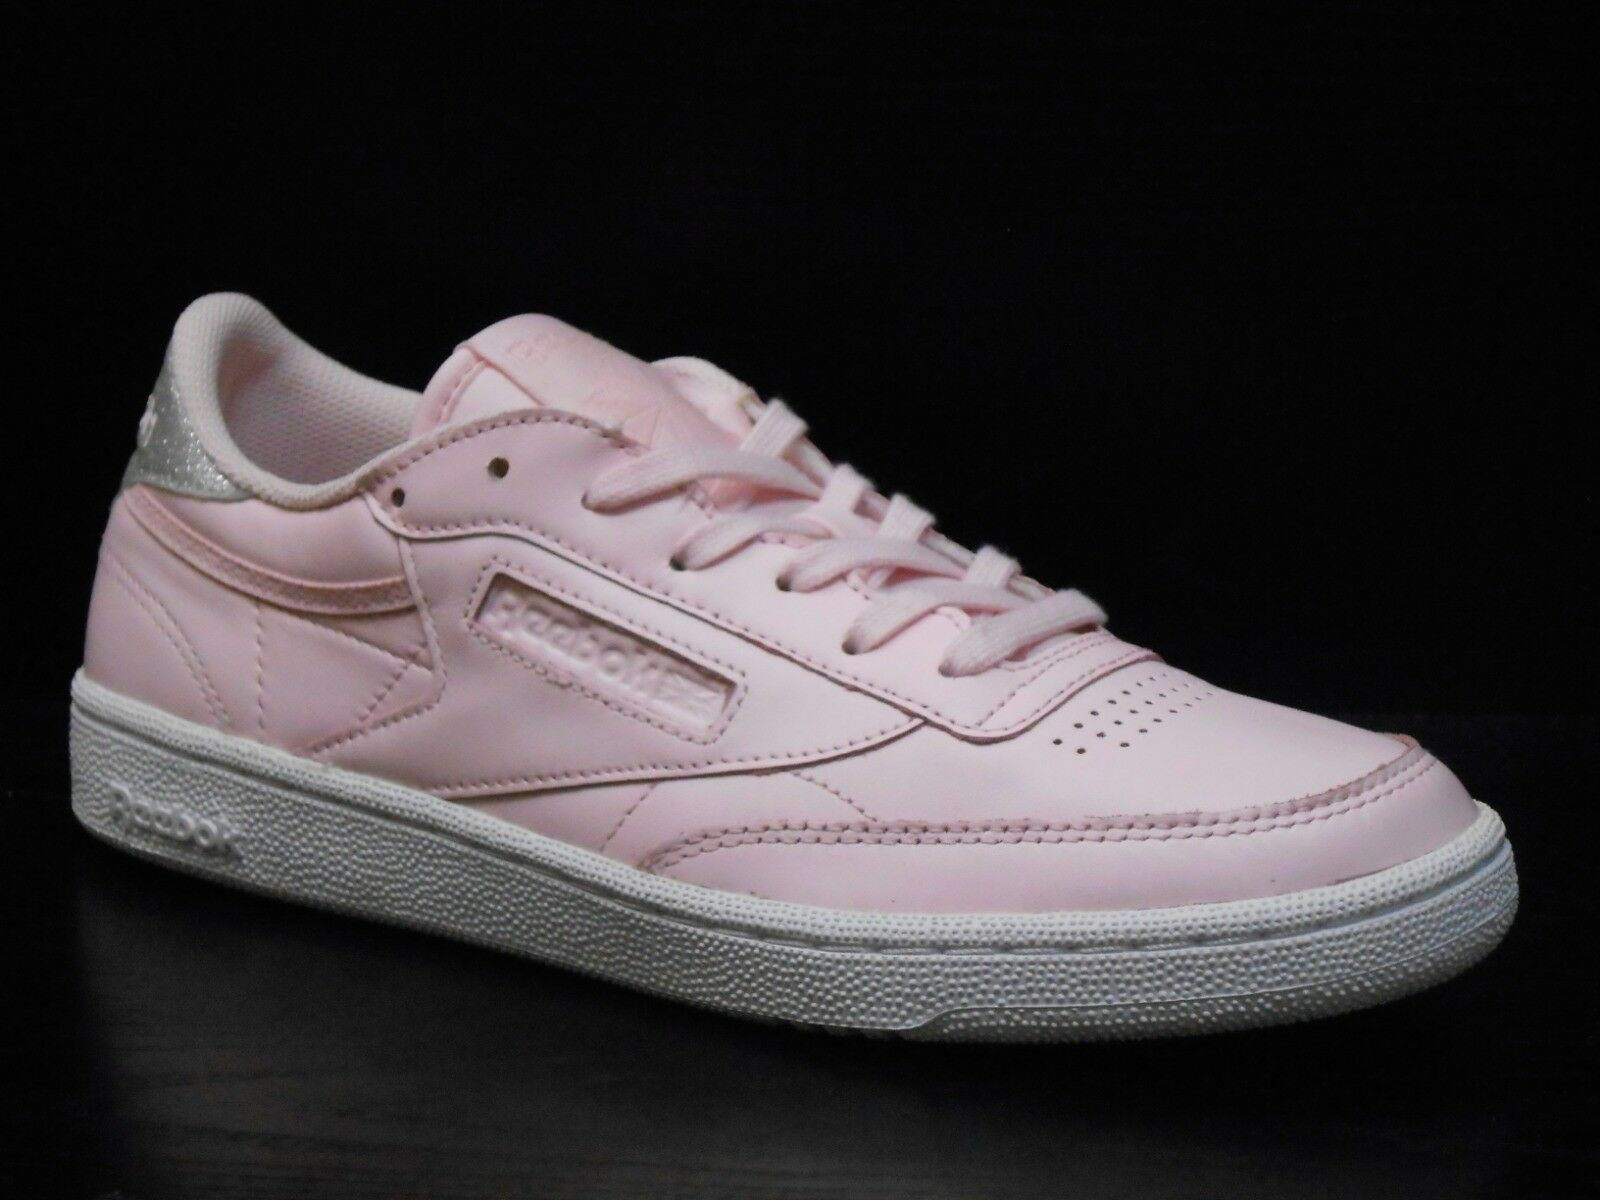 Zapatos promocionales para hombres y mujeres Reebok Club C 85 Diamond Womens Trainer Shoe Size 6.5 Pink White 65/-